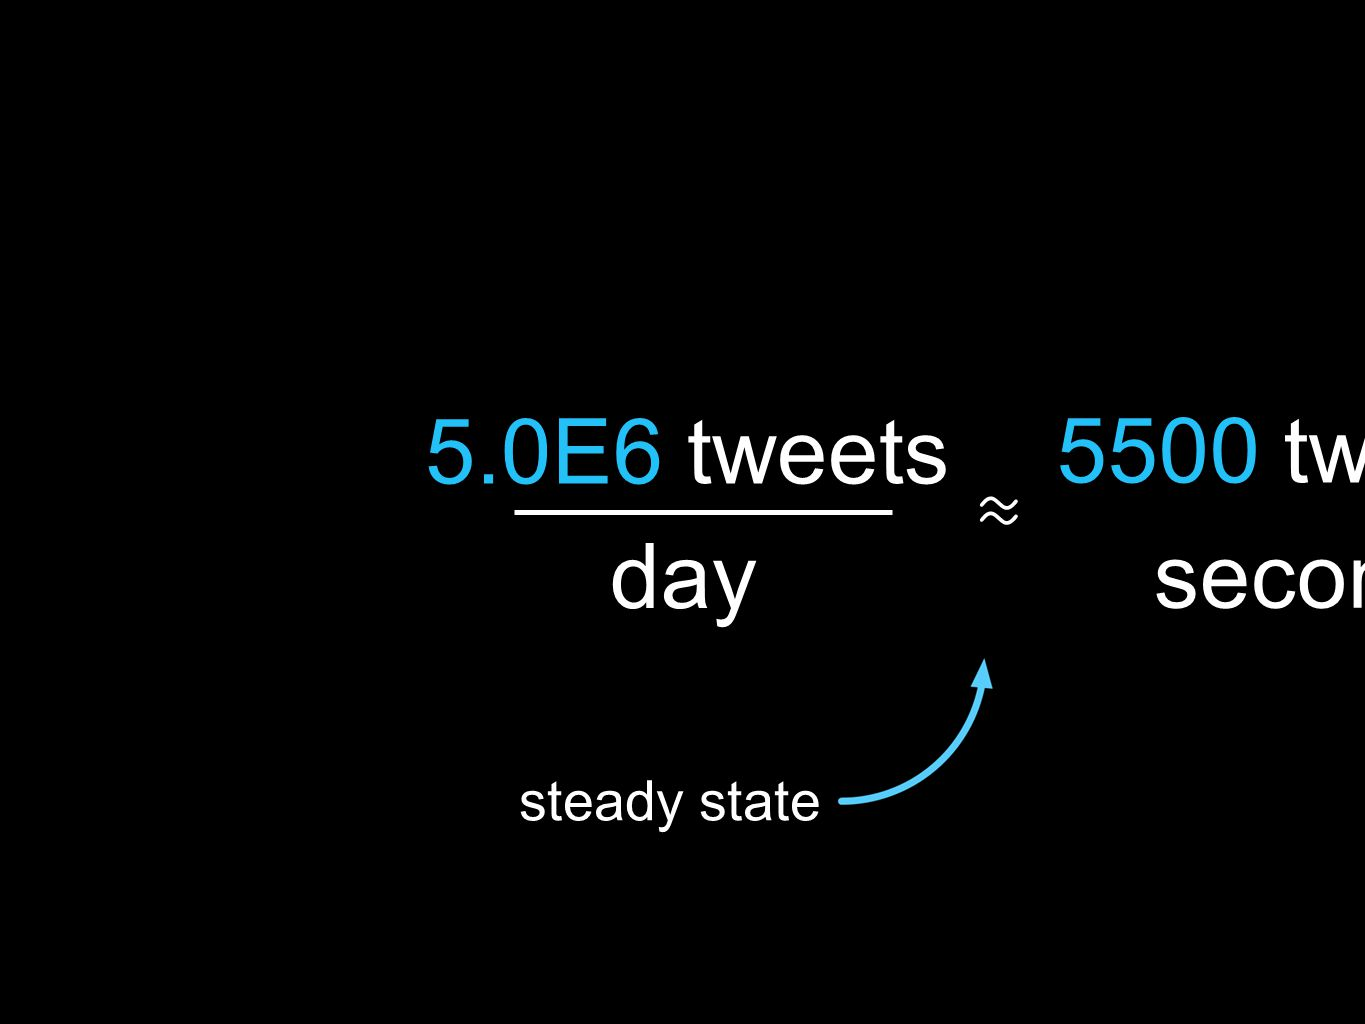 5.0E6 tweets day 5500 tweets second ≈ steady state